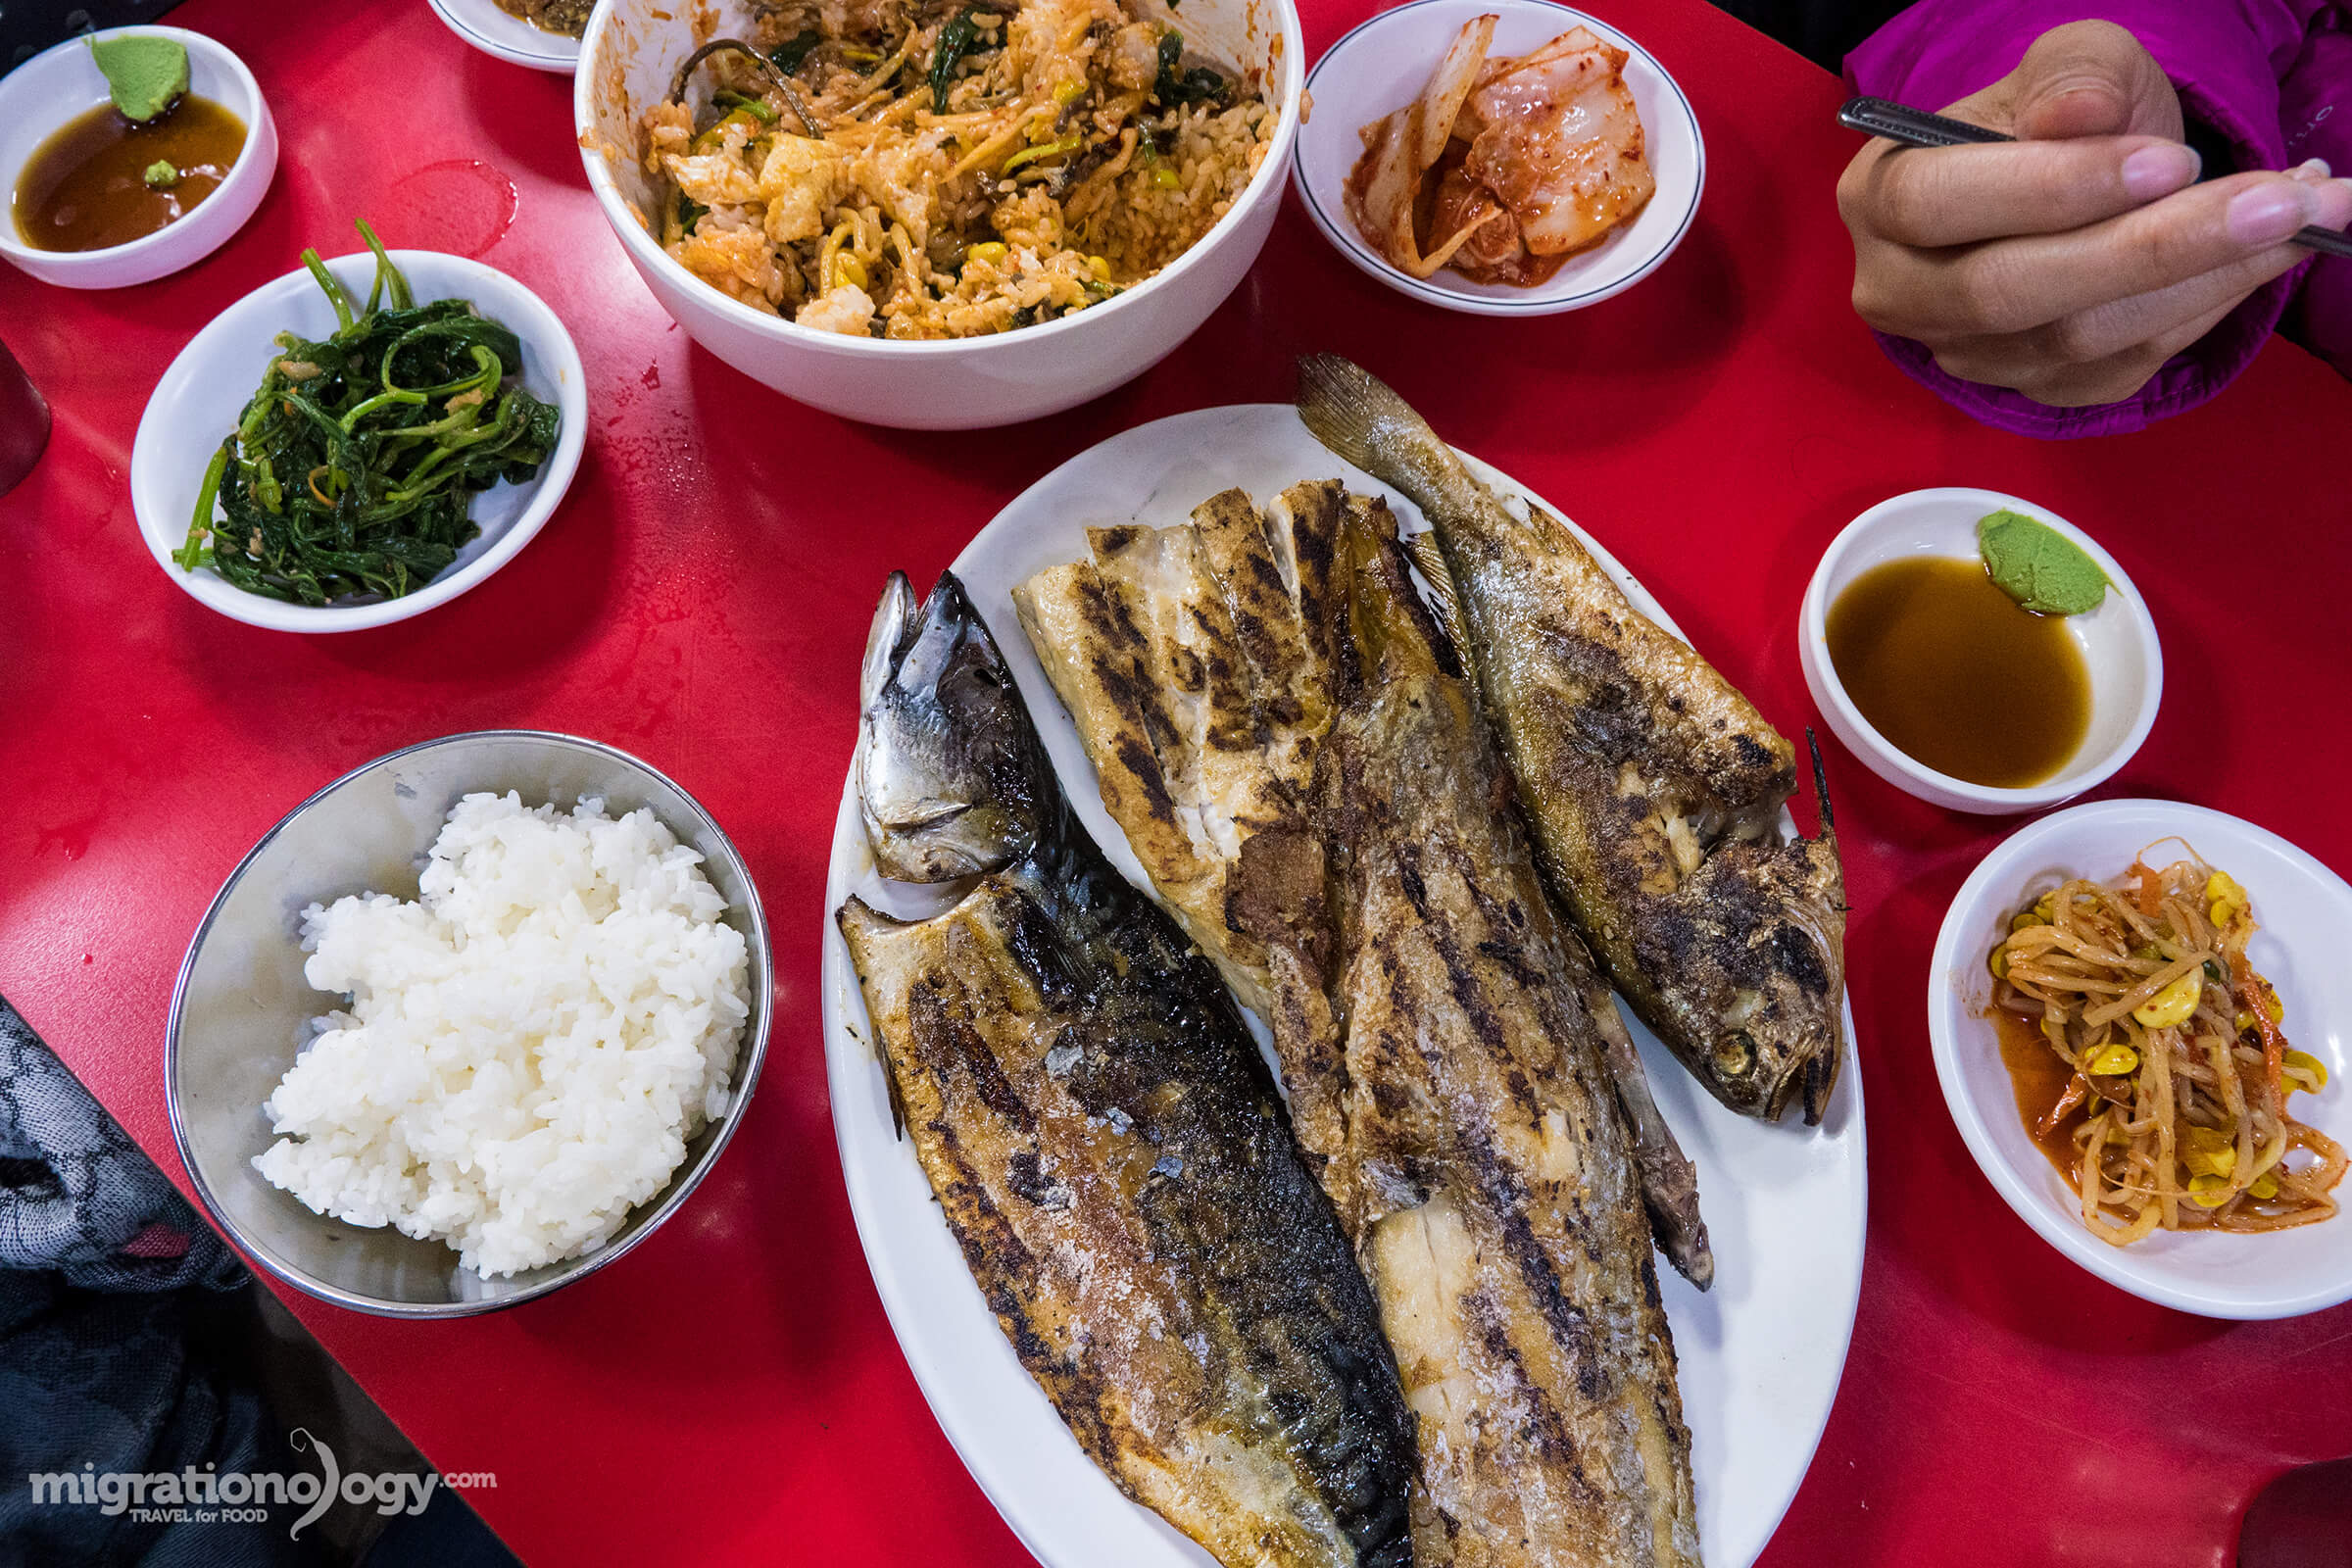 Seoul travel guide for food lovers by mark wiens delicious meal at seouls dongdaemun grilled fish street forumfinder Choice Image